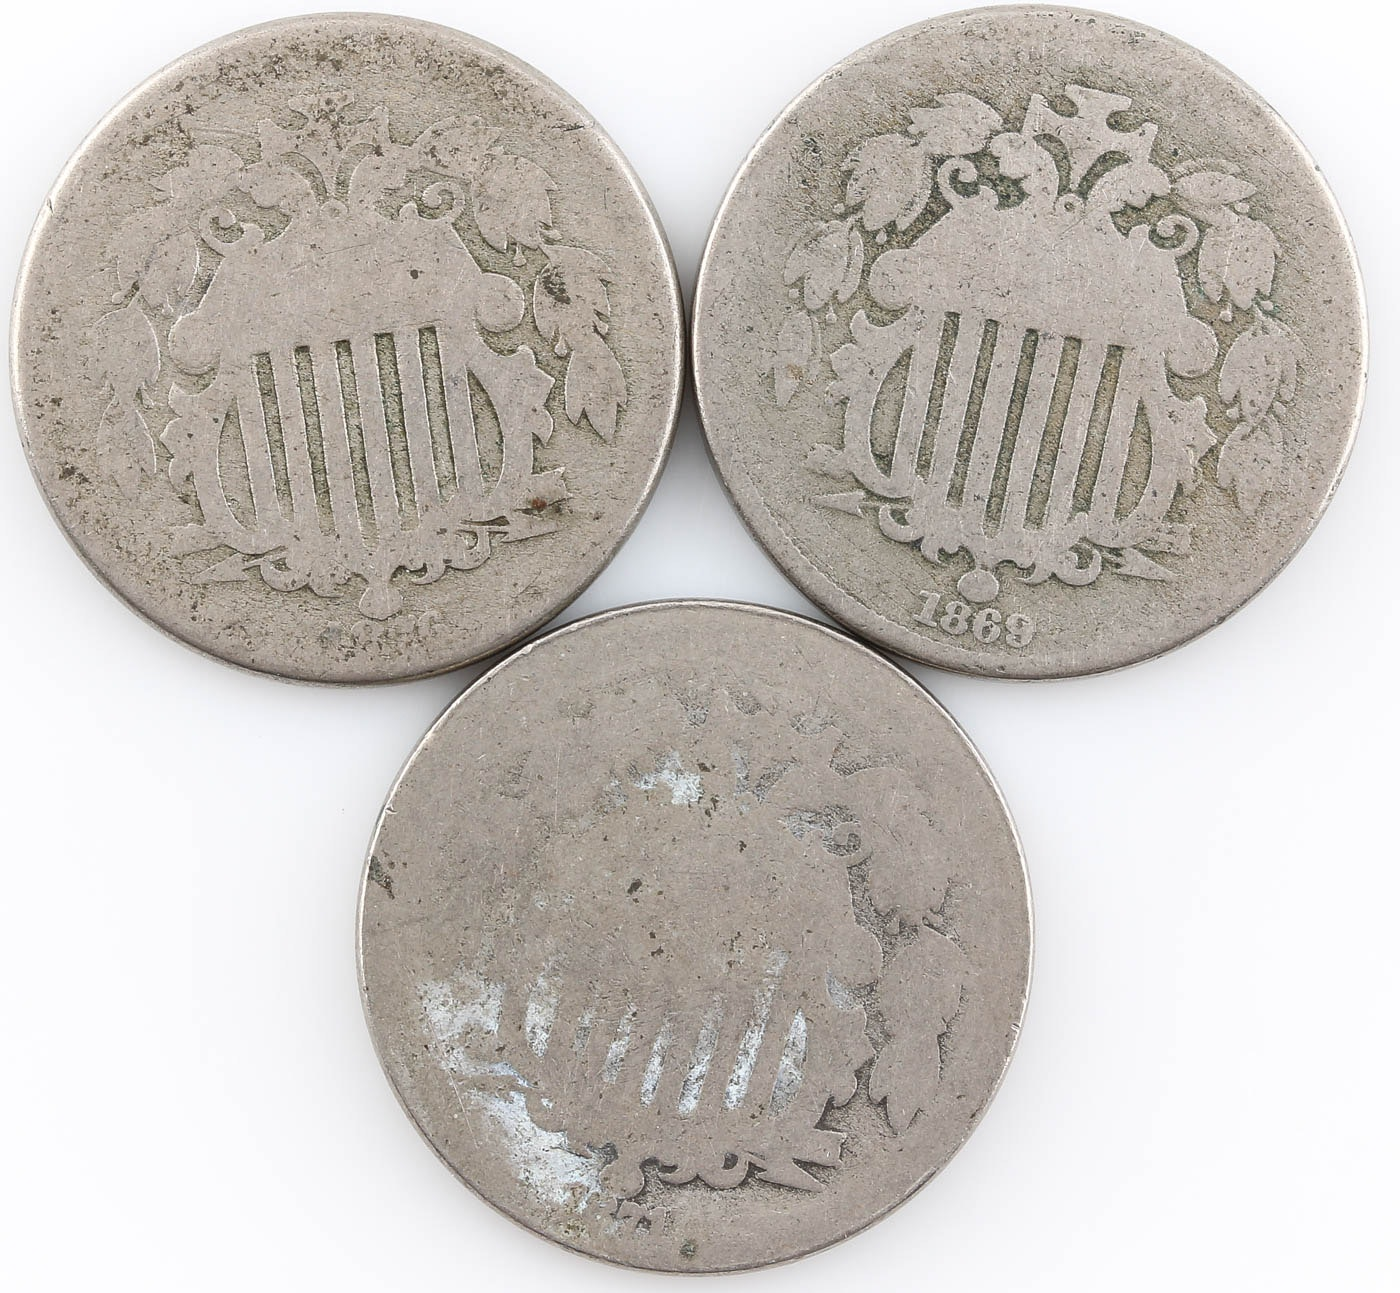 Group of Three Shield Nickels: 1869, 1871, and 1876